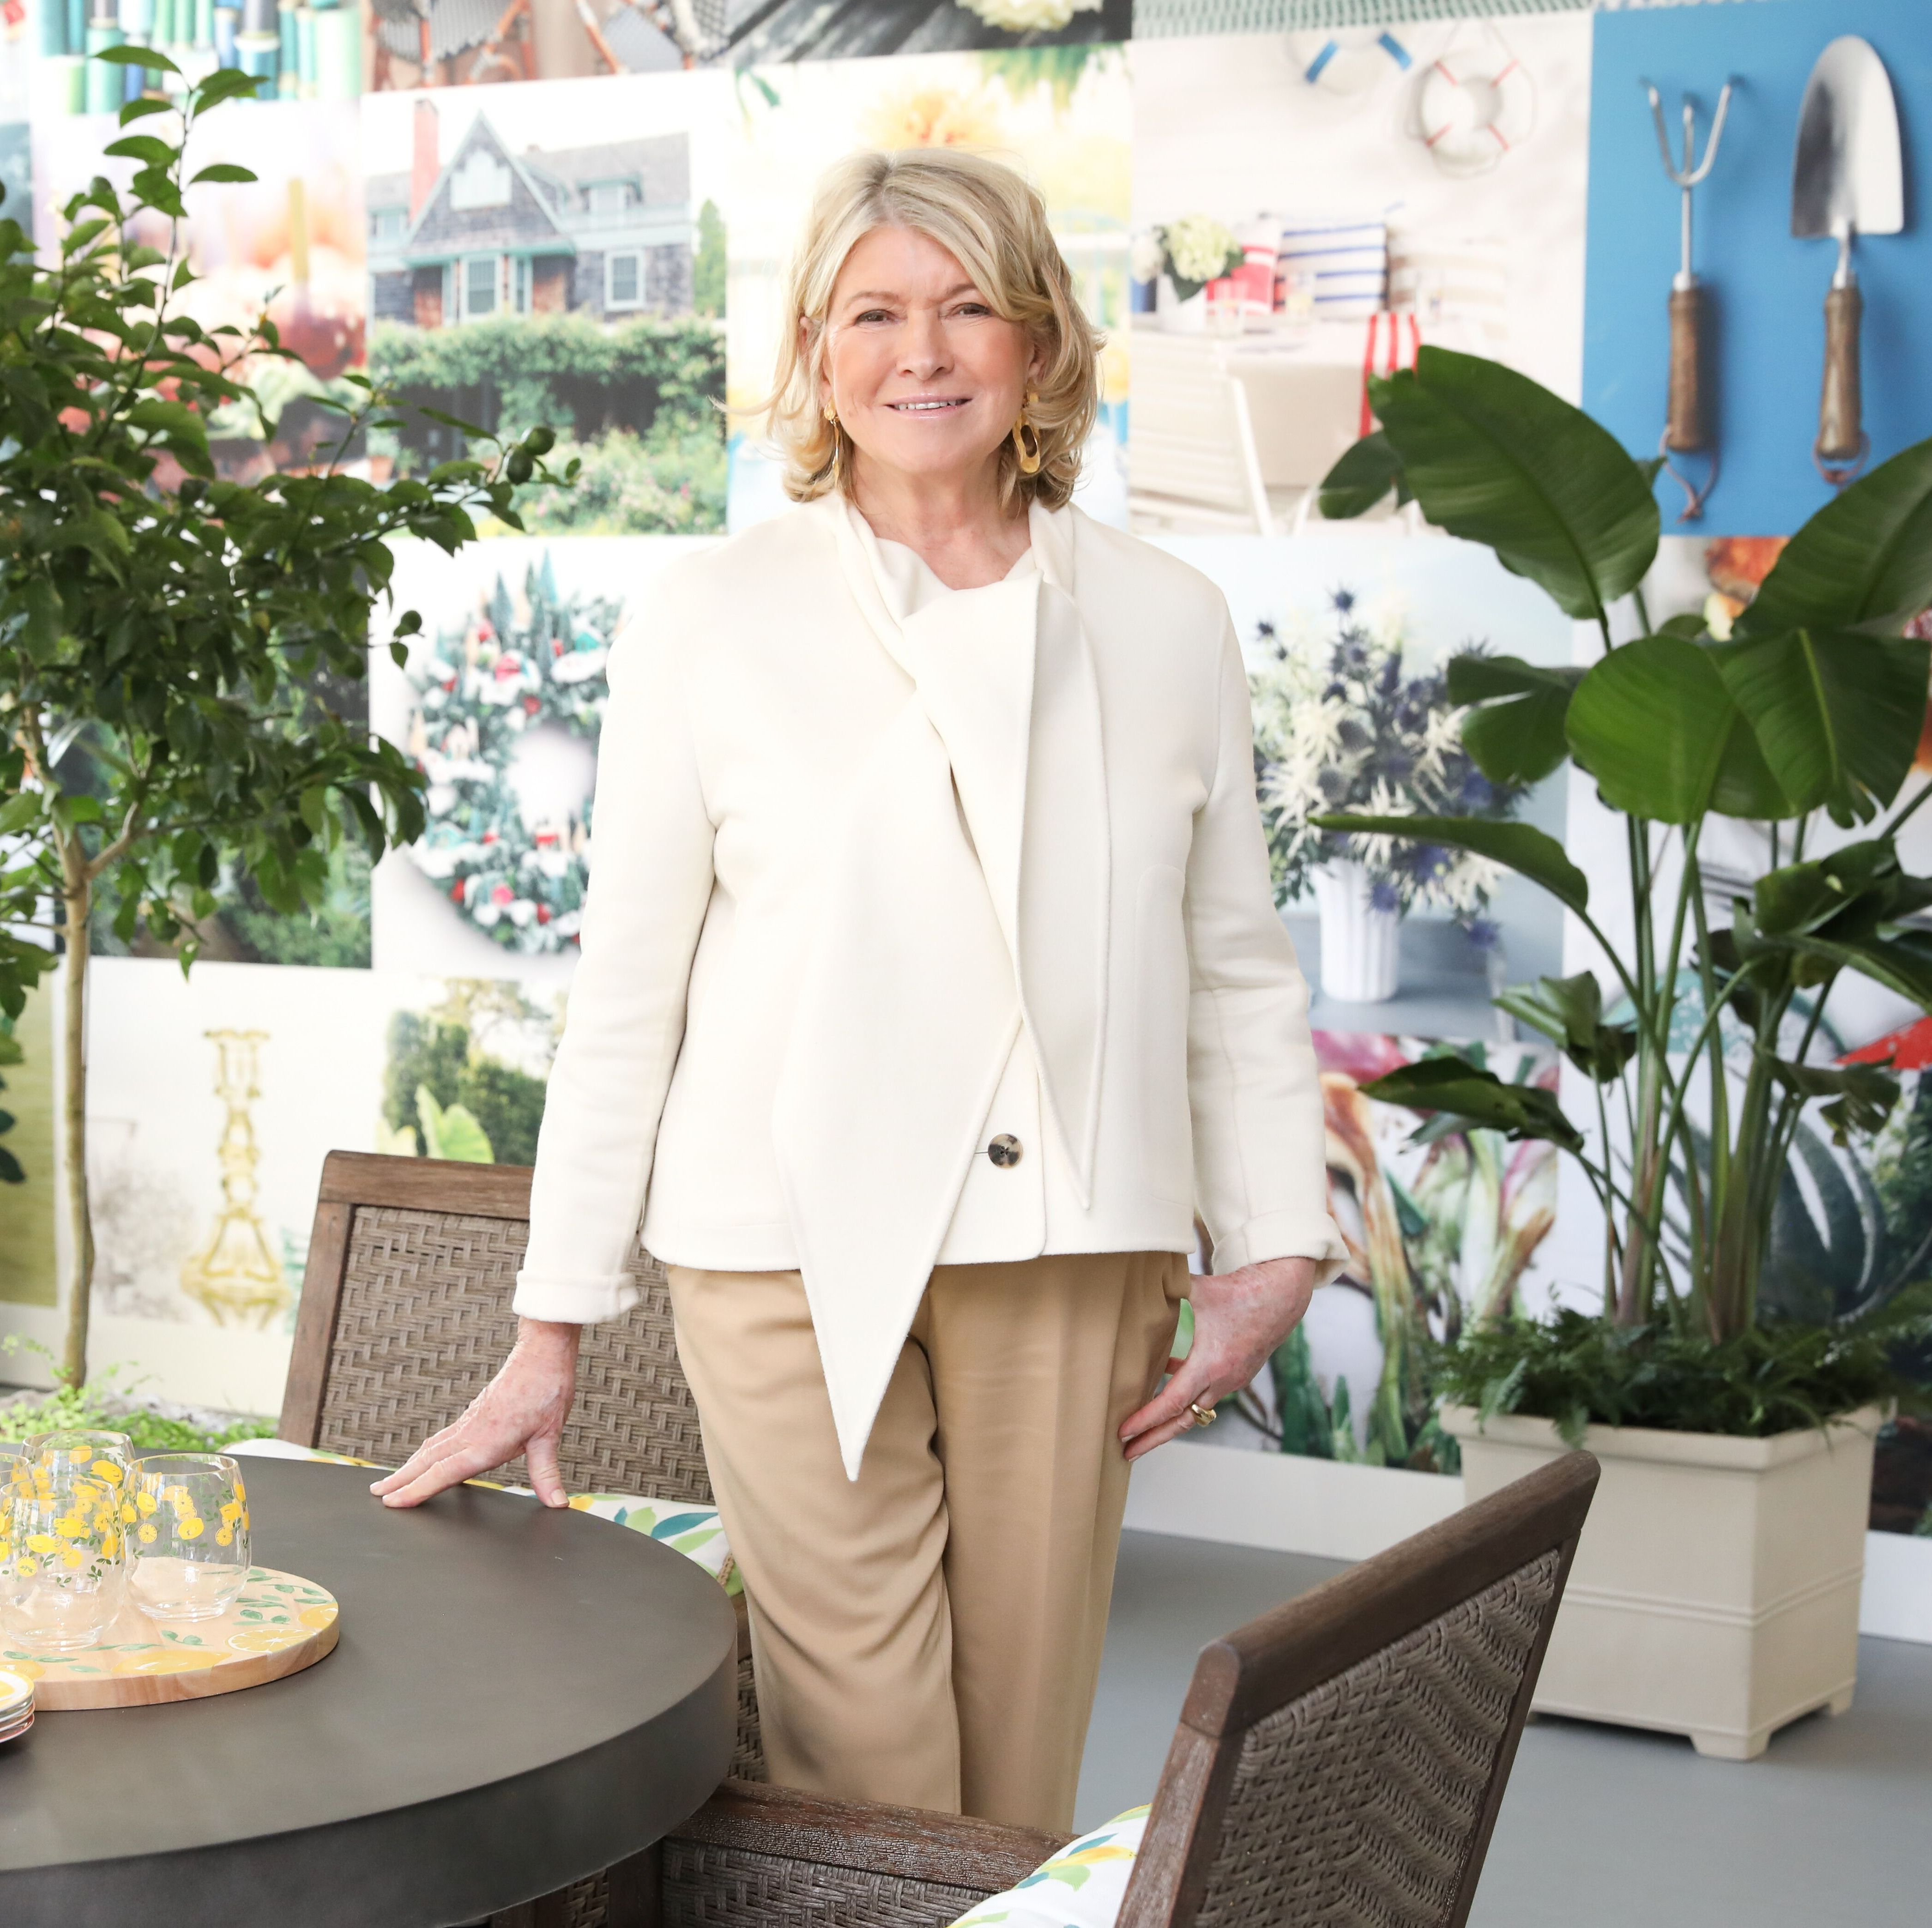 Martha Stewart Welcomes Spring with Four New Lifestyle Product Lines